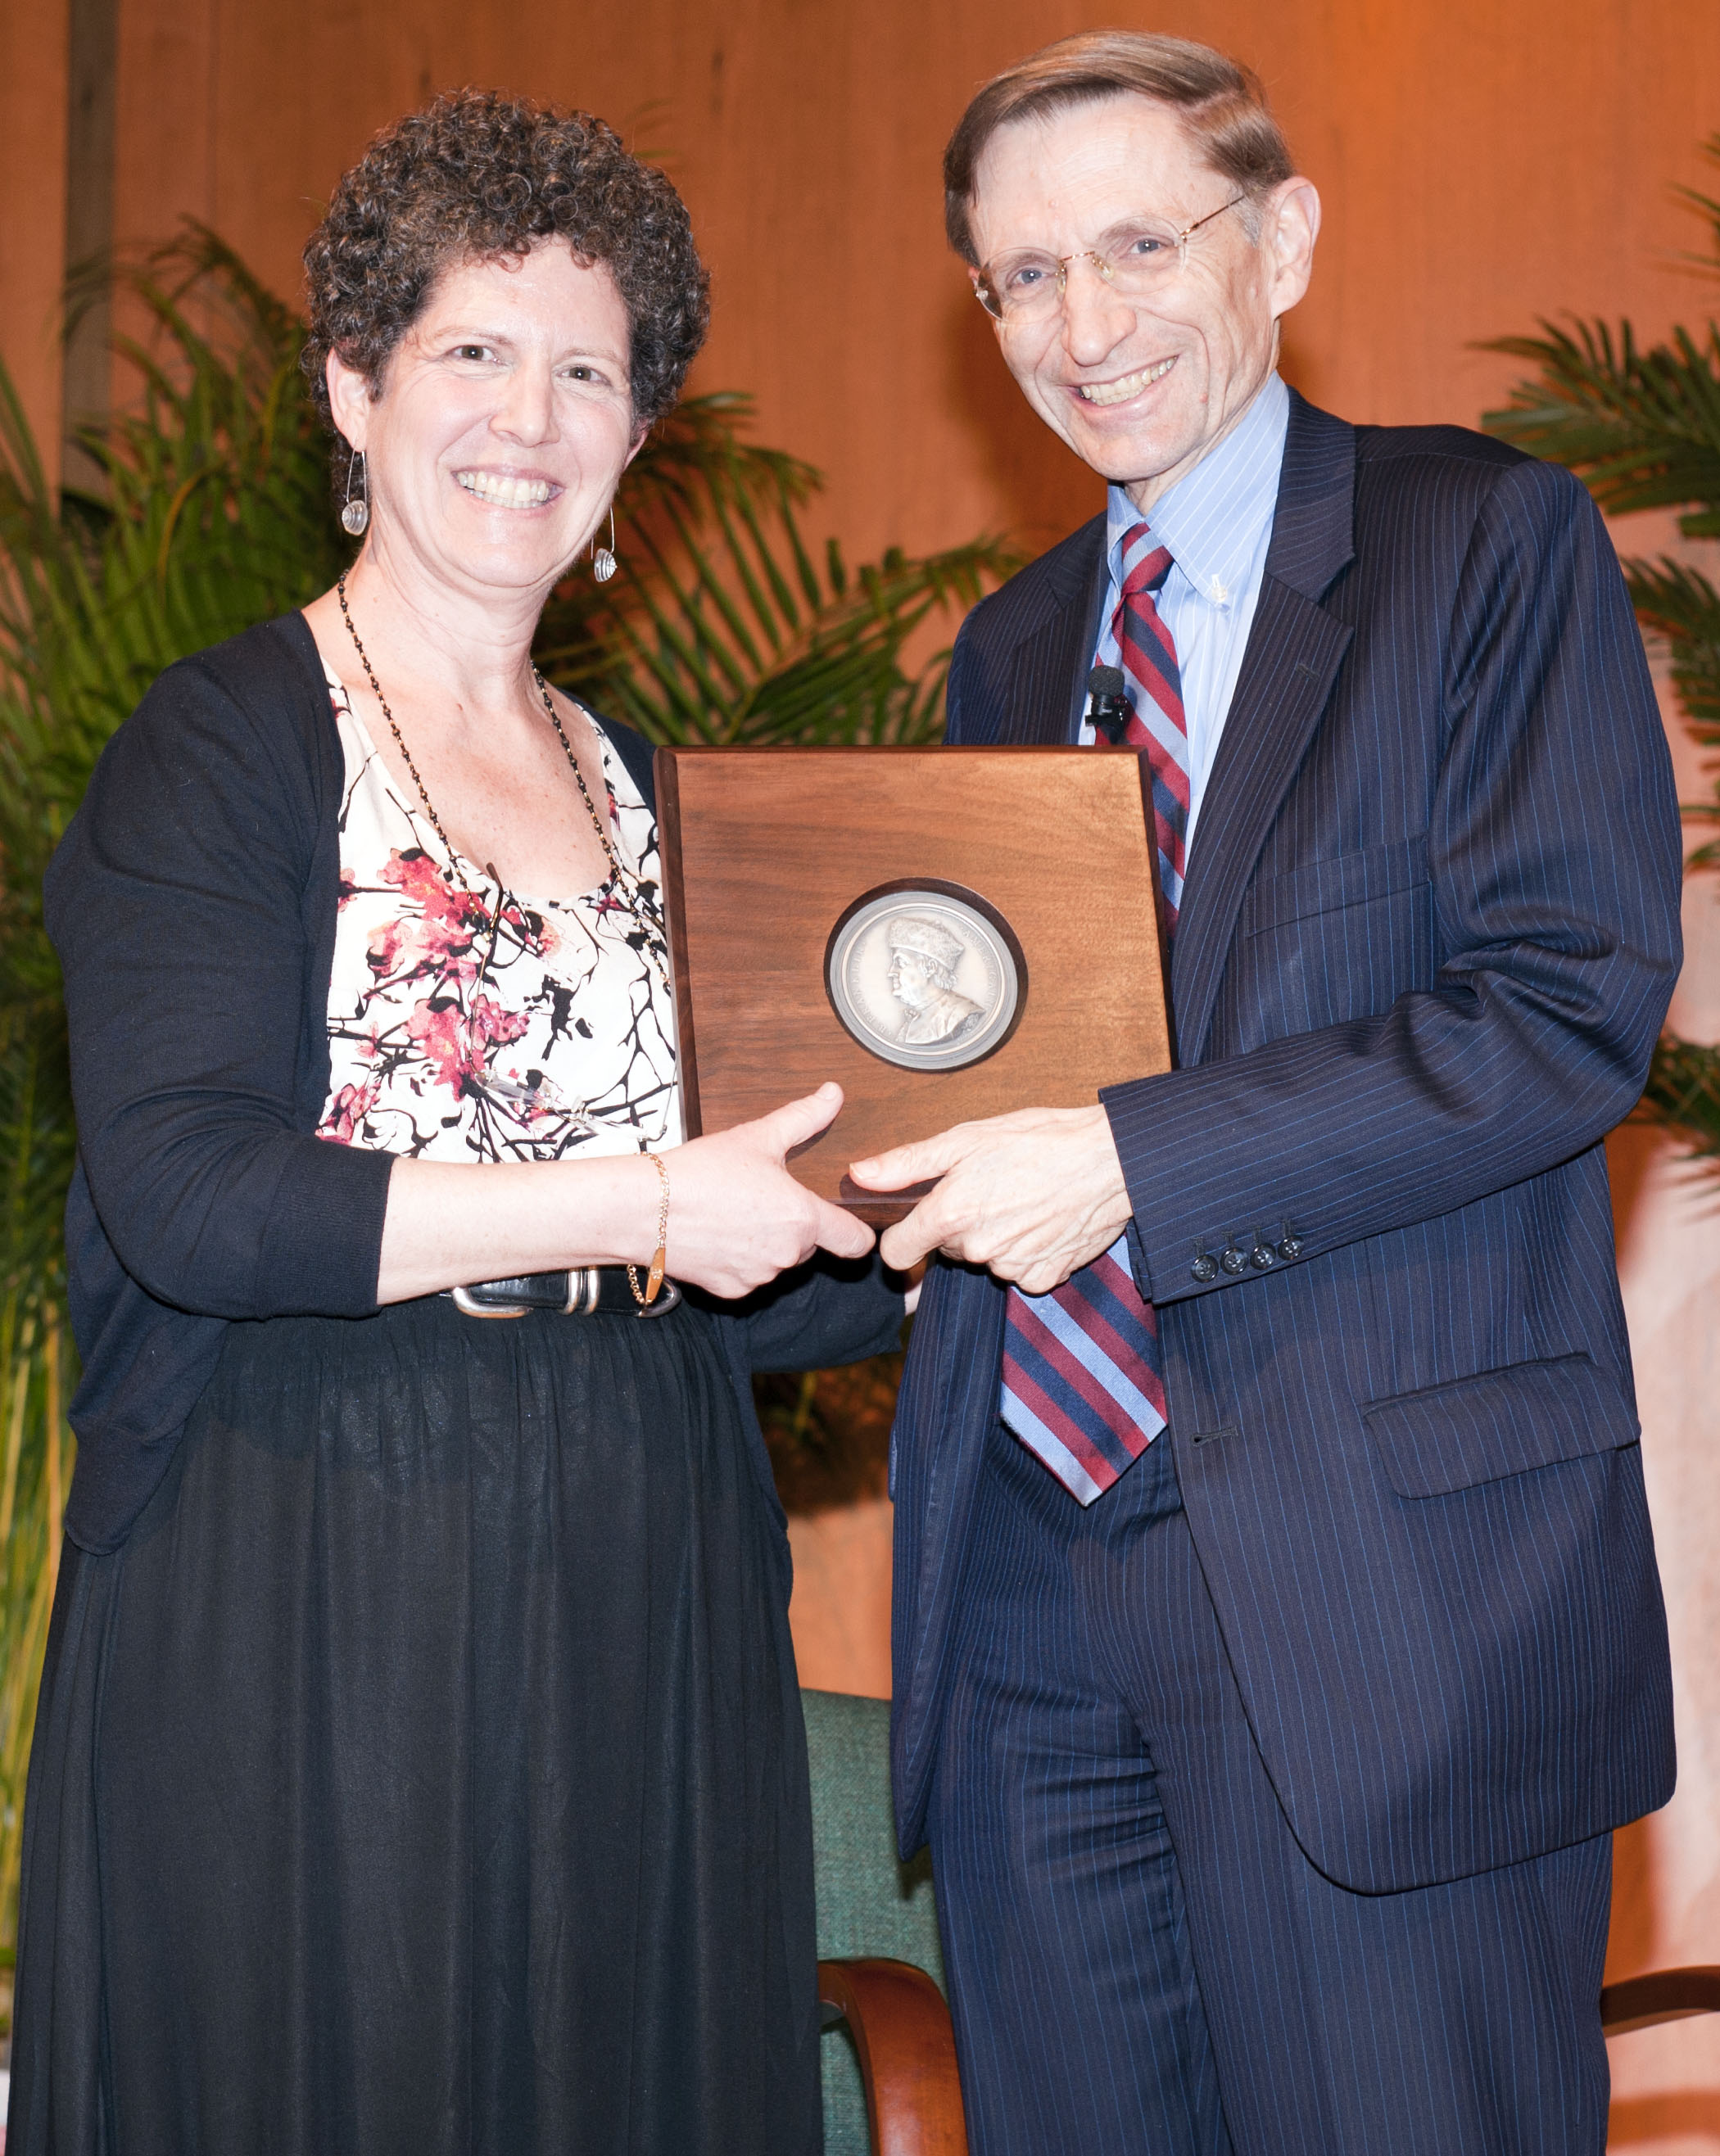 Laurie Kahn presenting Bill Drayton with his Laureate plaque